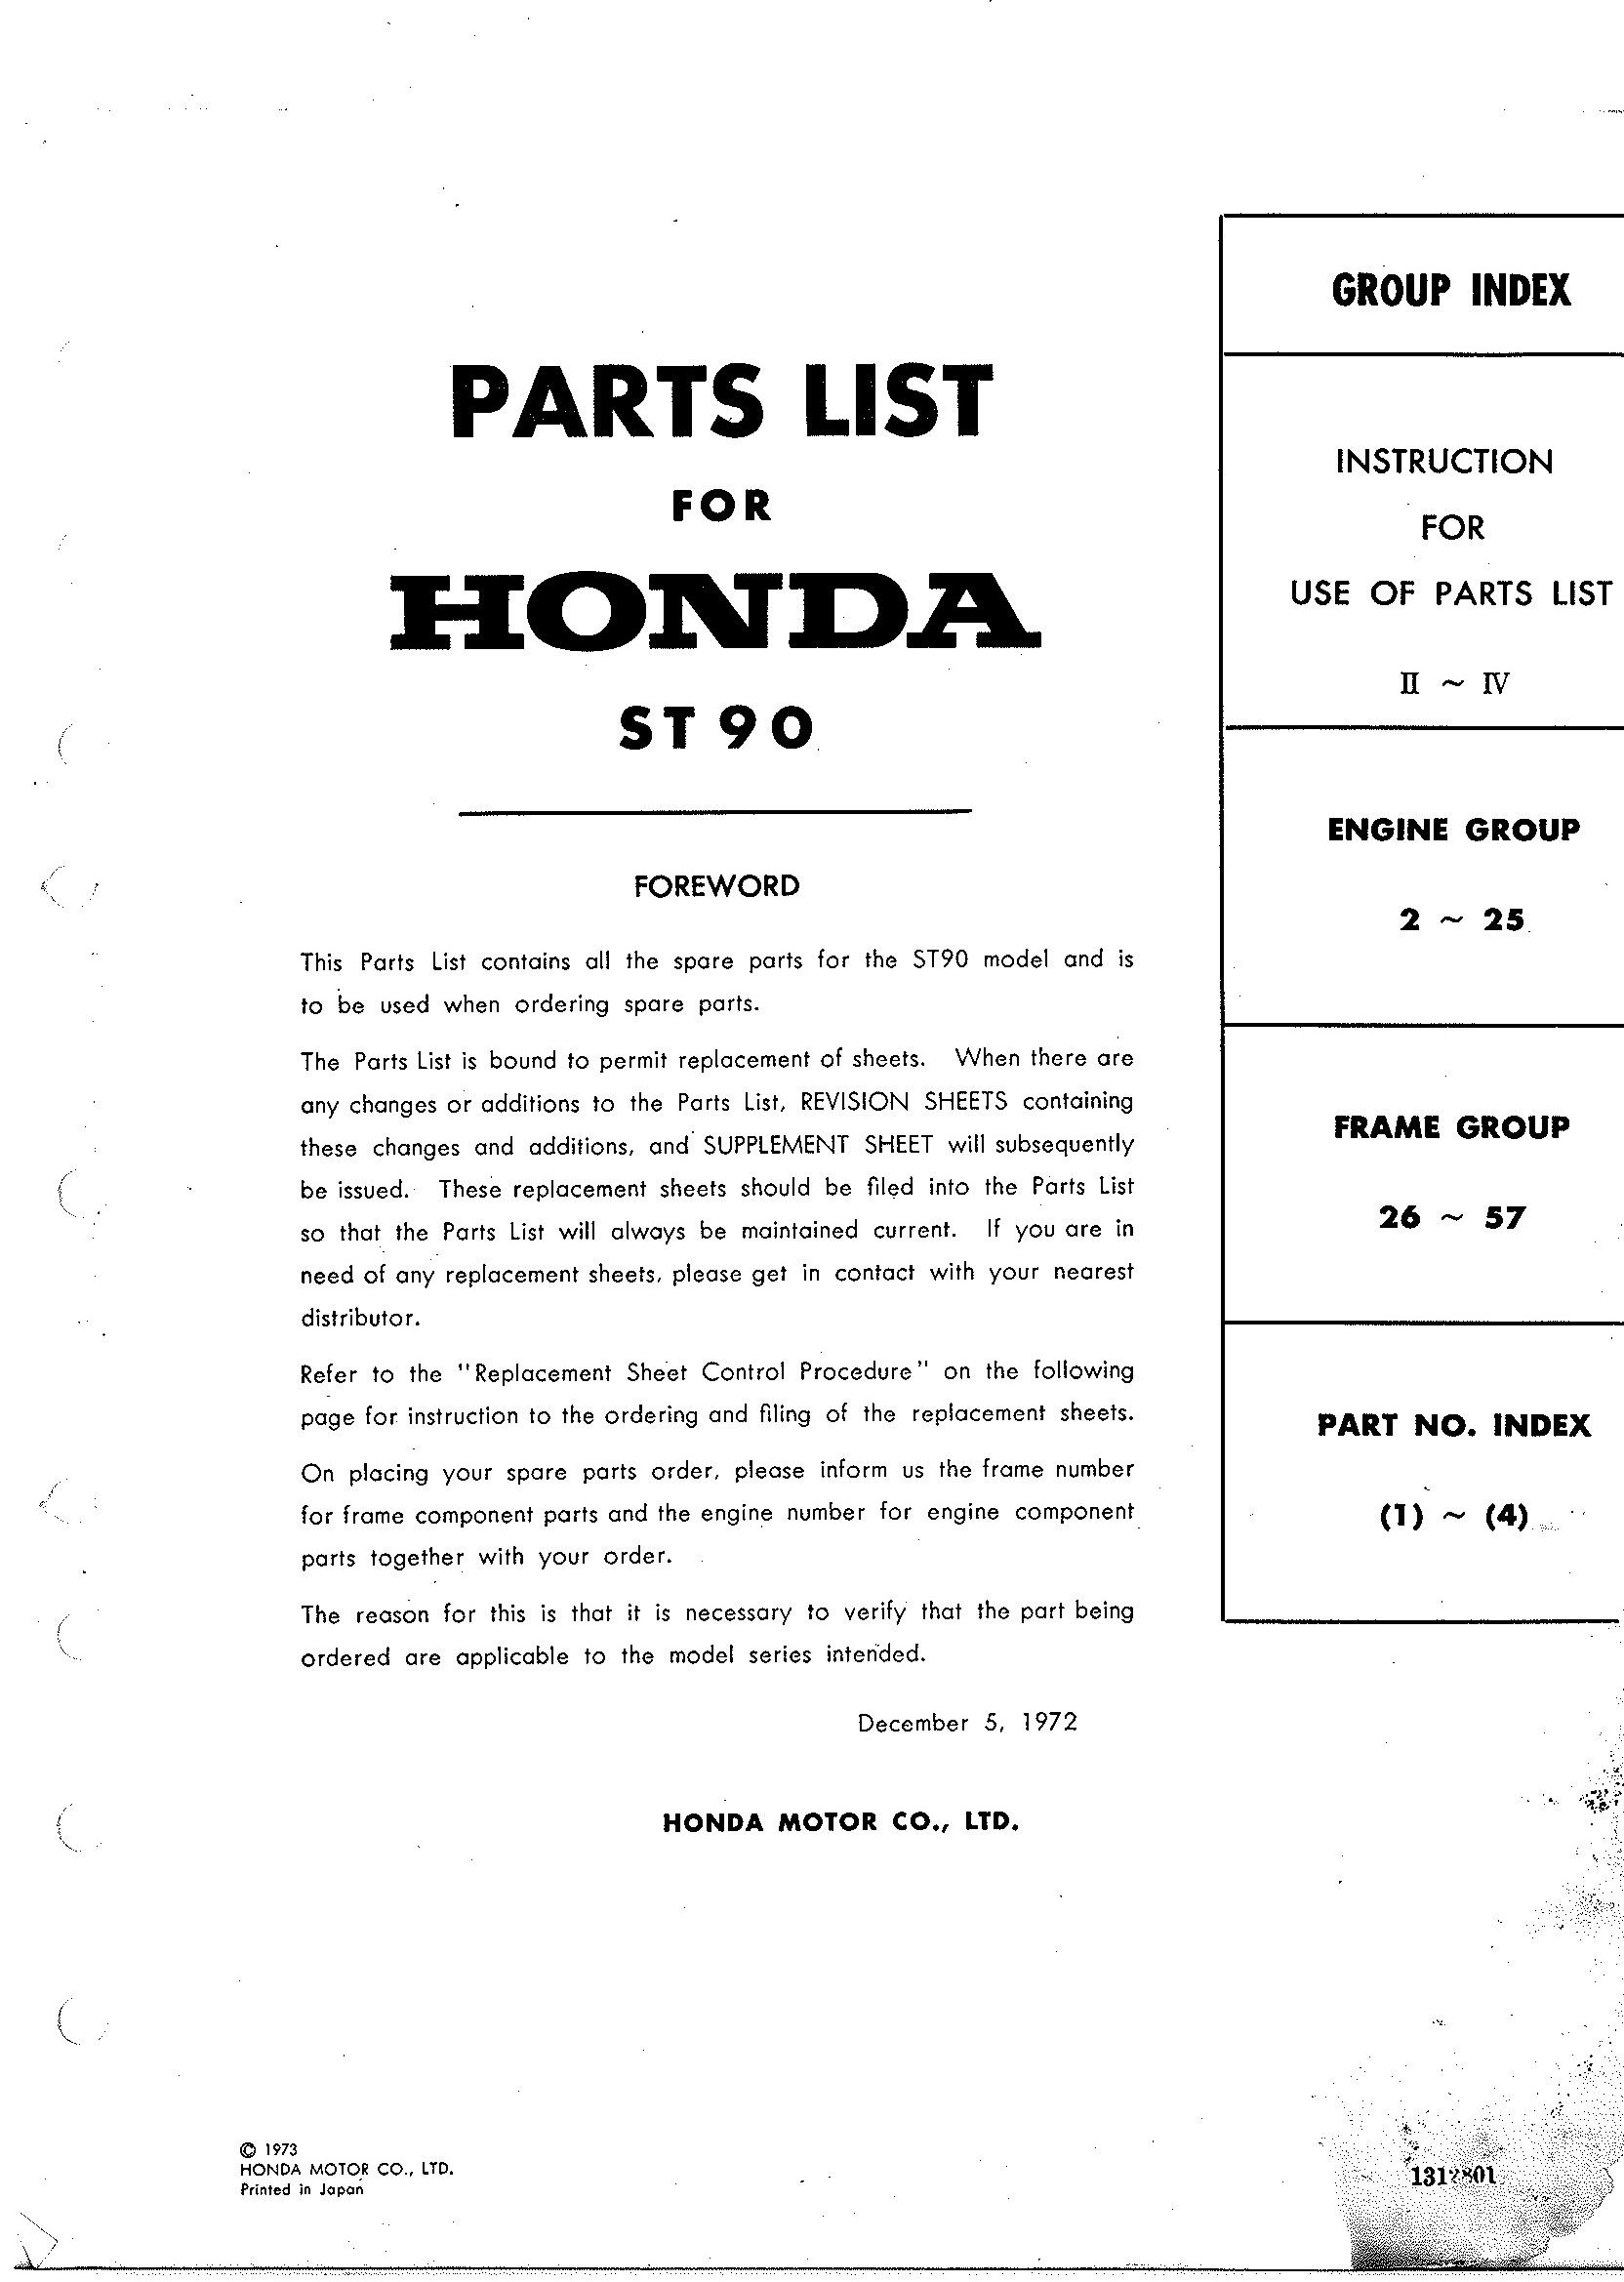 Parts List for Honda ST90 (1973)